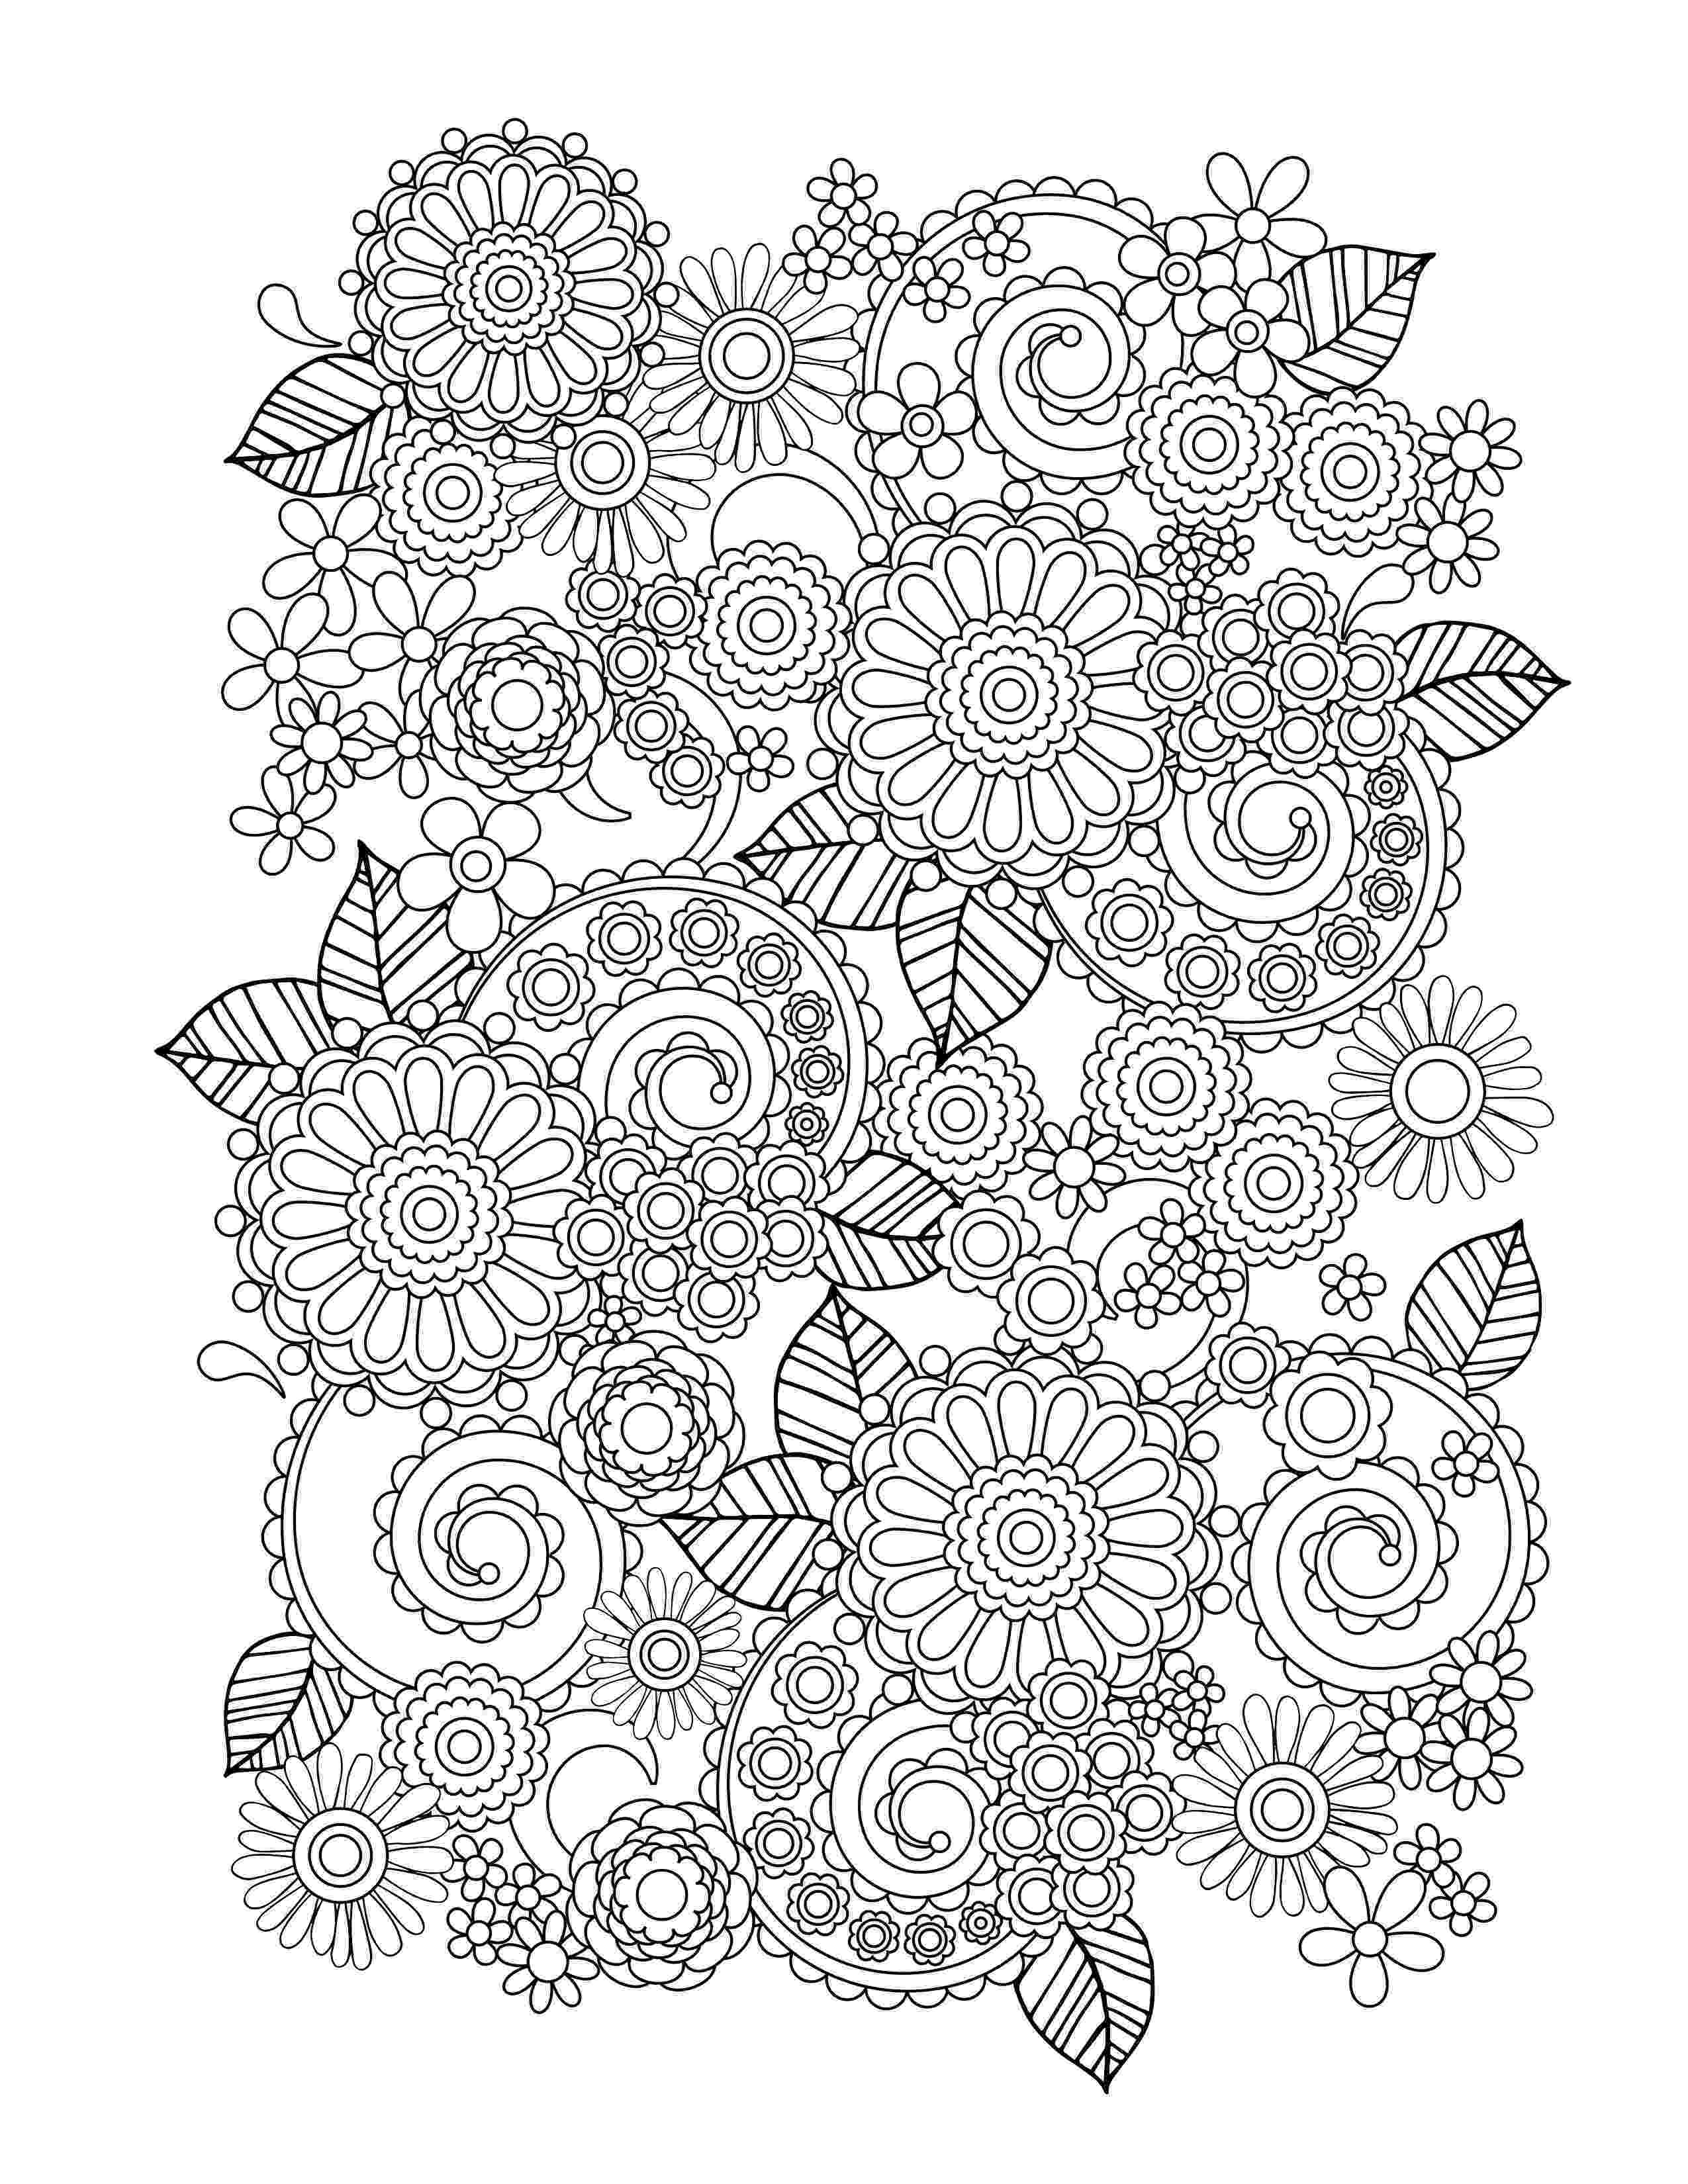 free printable flower coloring pages for adults flower coloring pages for adults best coloring pages for pages printable adults for coloring flower free